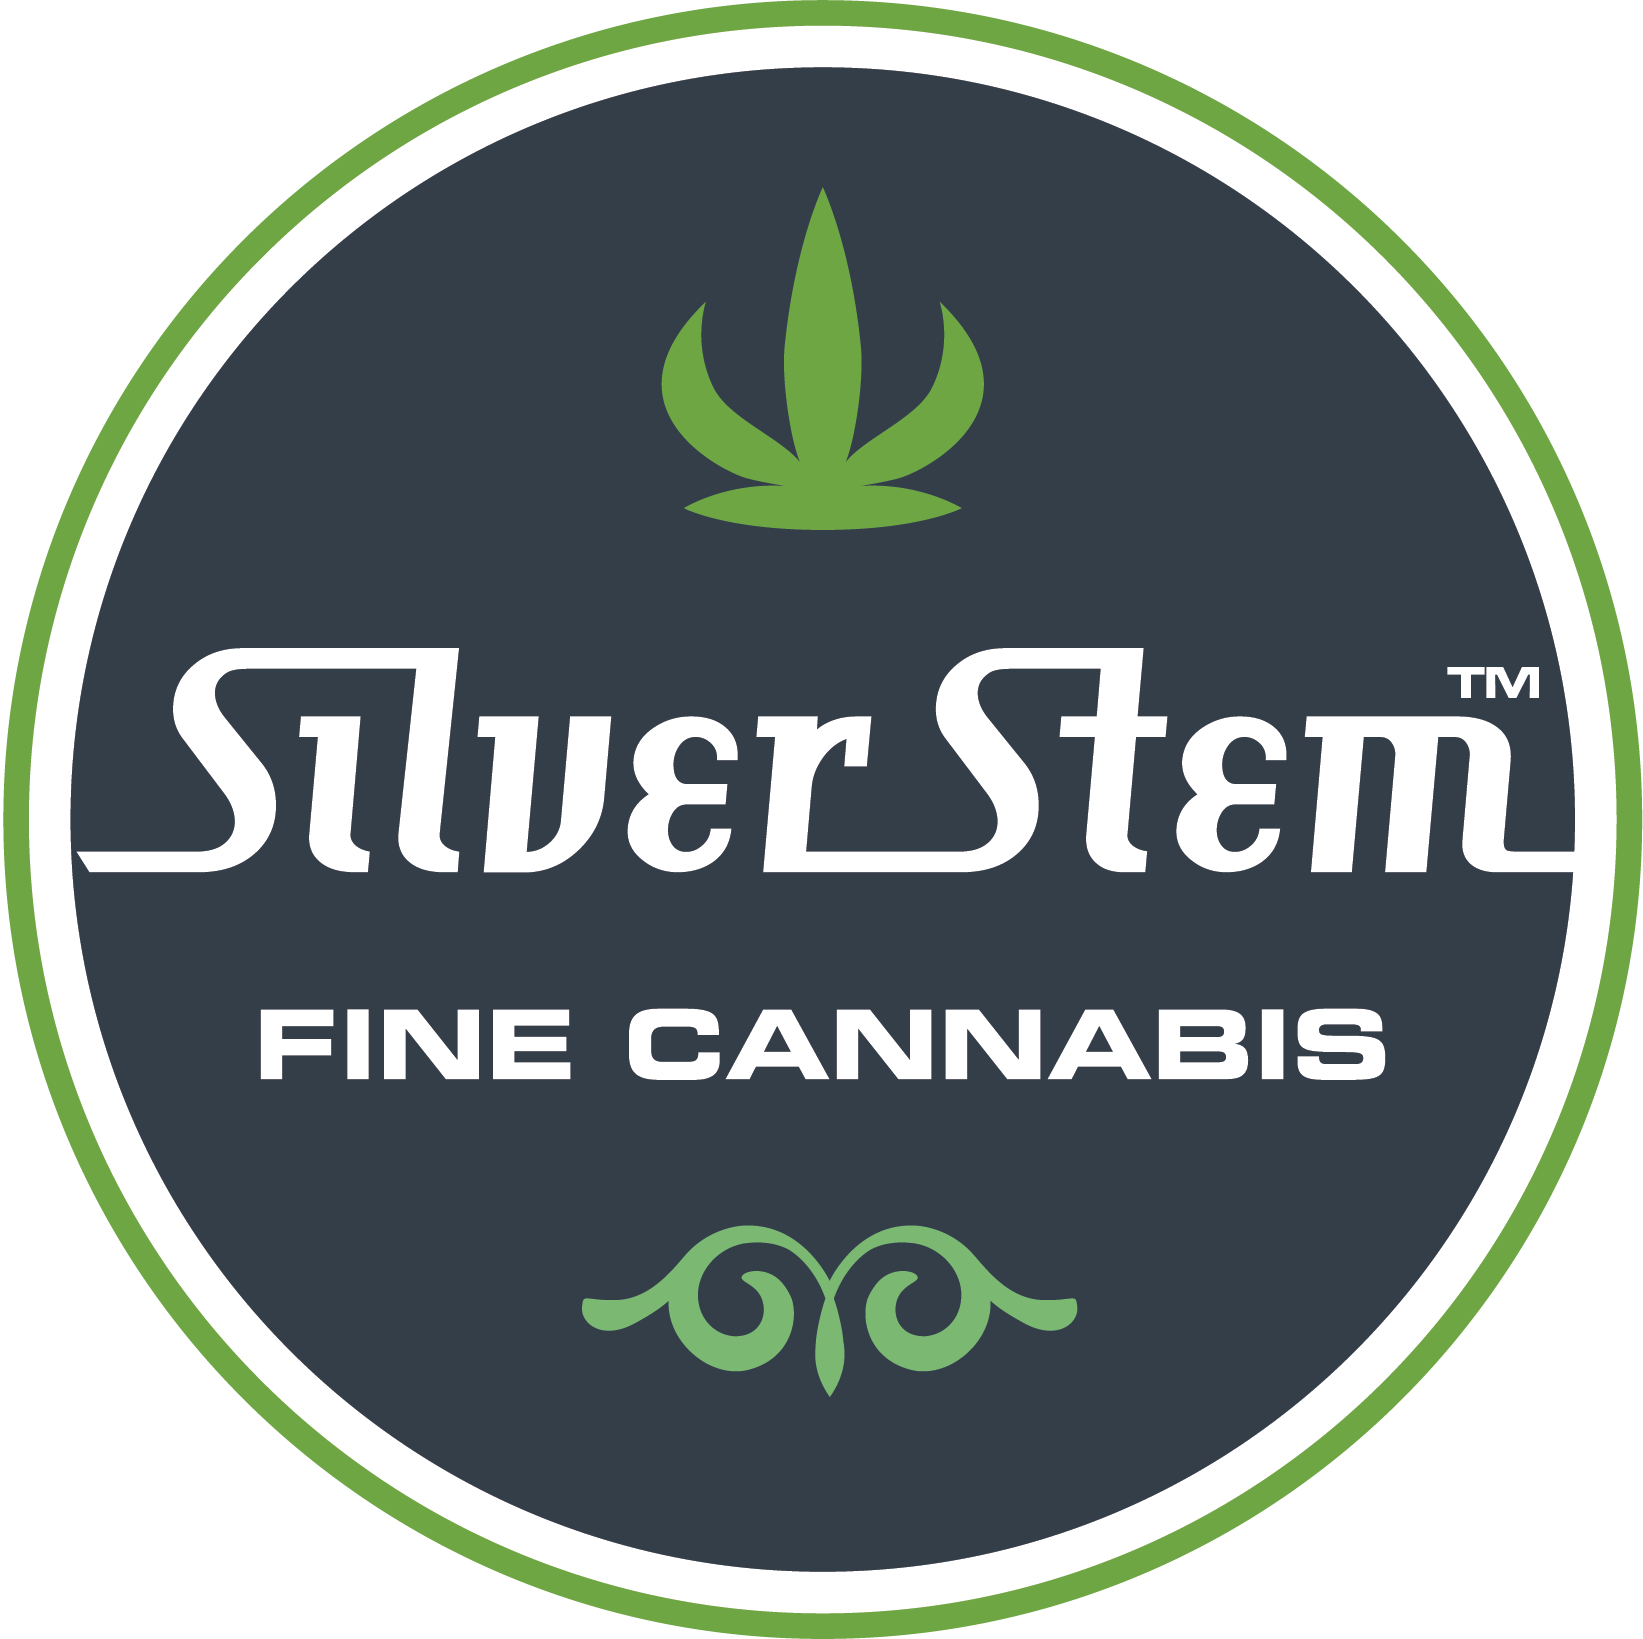 Silver Stem Fine Cannabis - Sheridan Englewood Dispensary